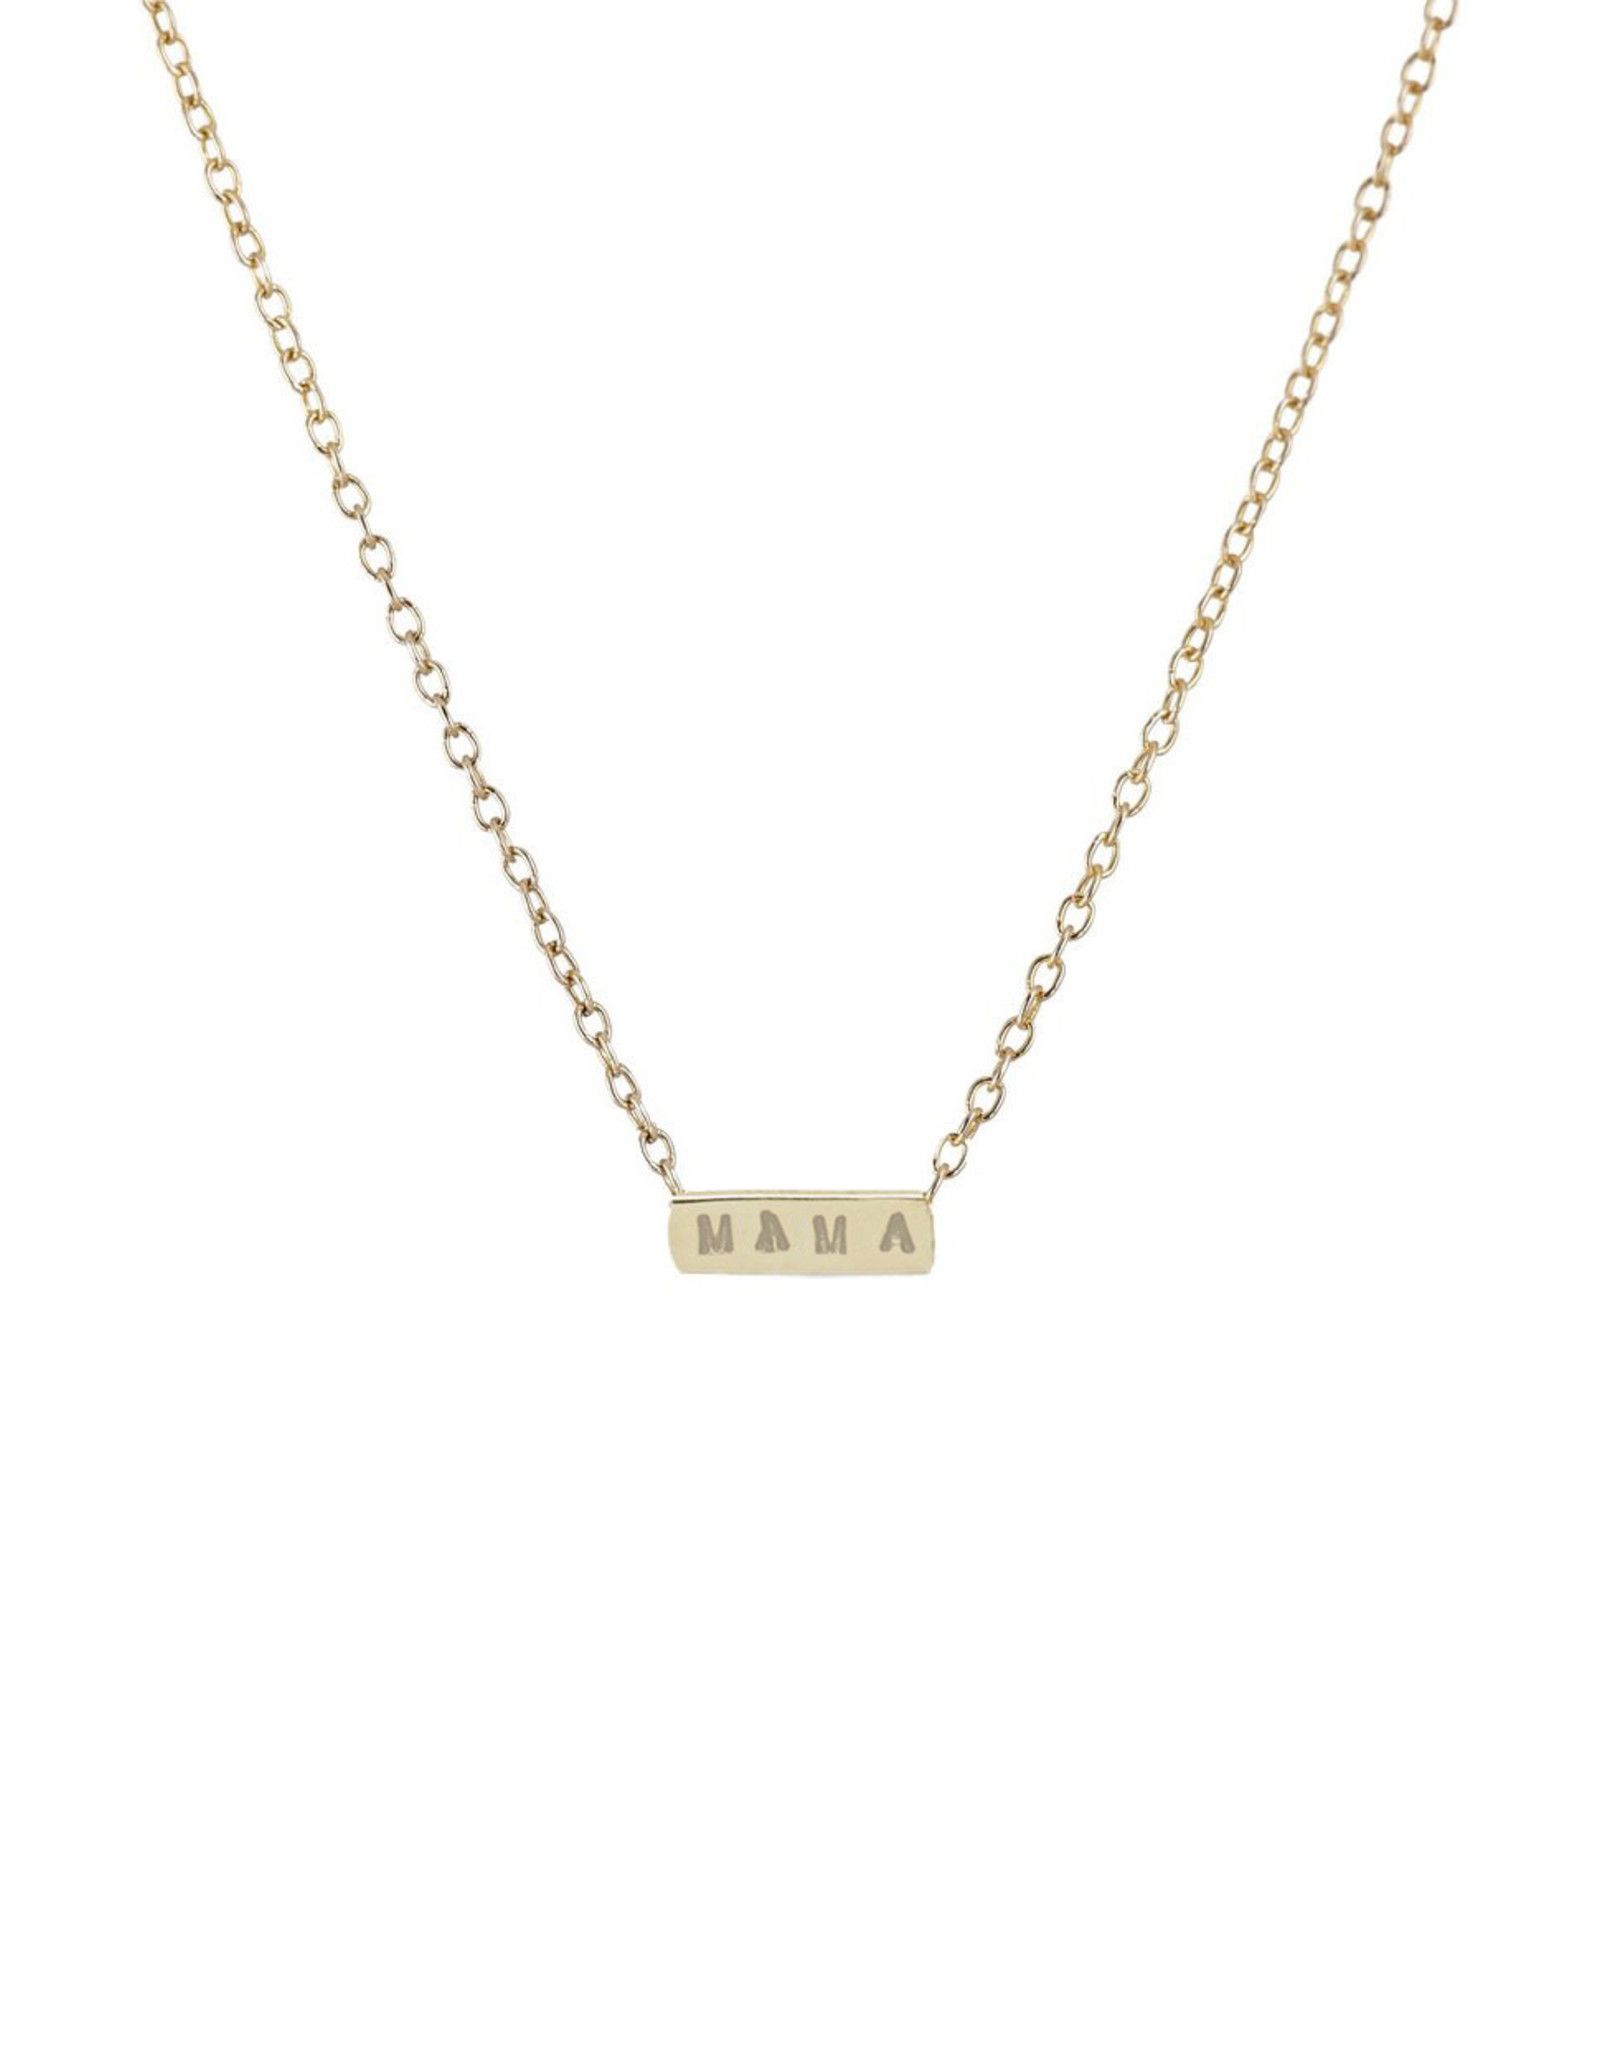 Scosha 'MAMA' Necklace - Gold